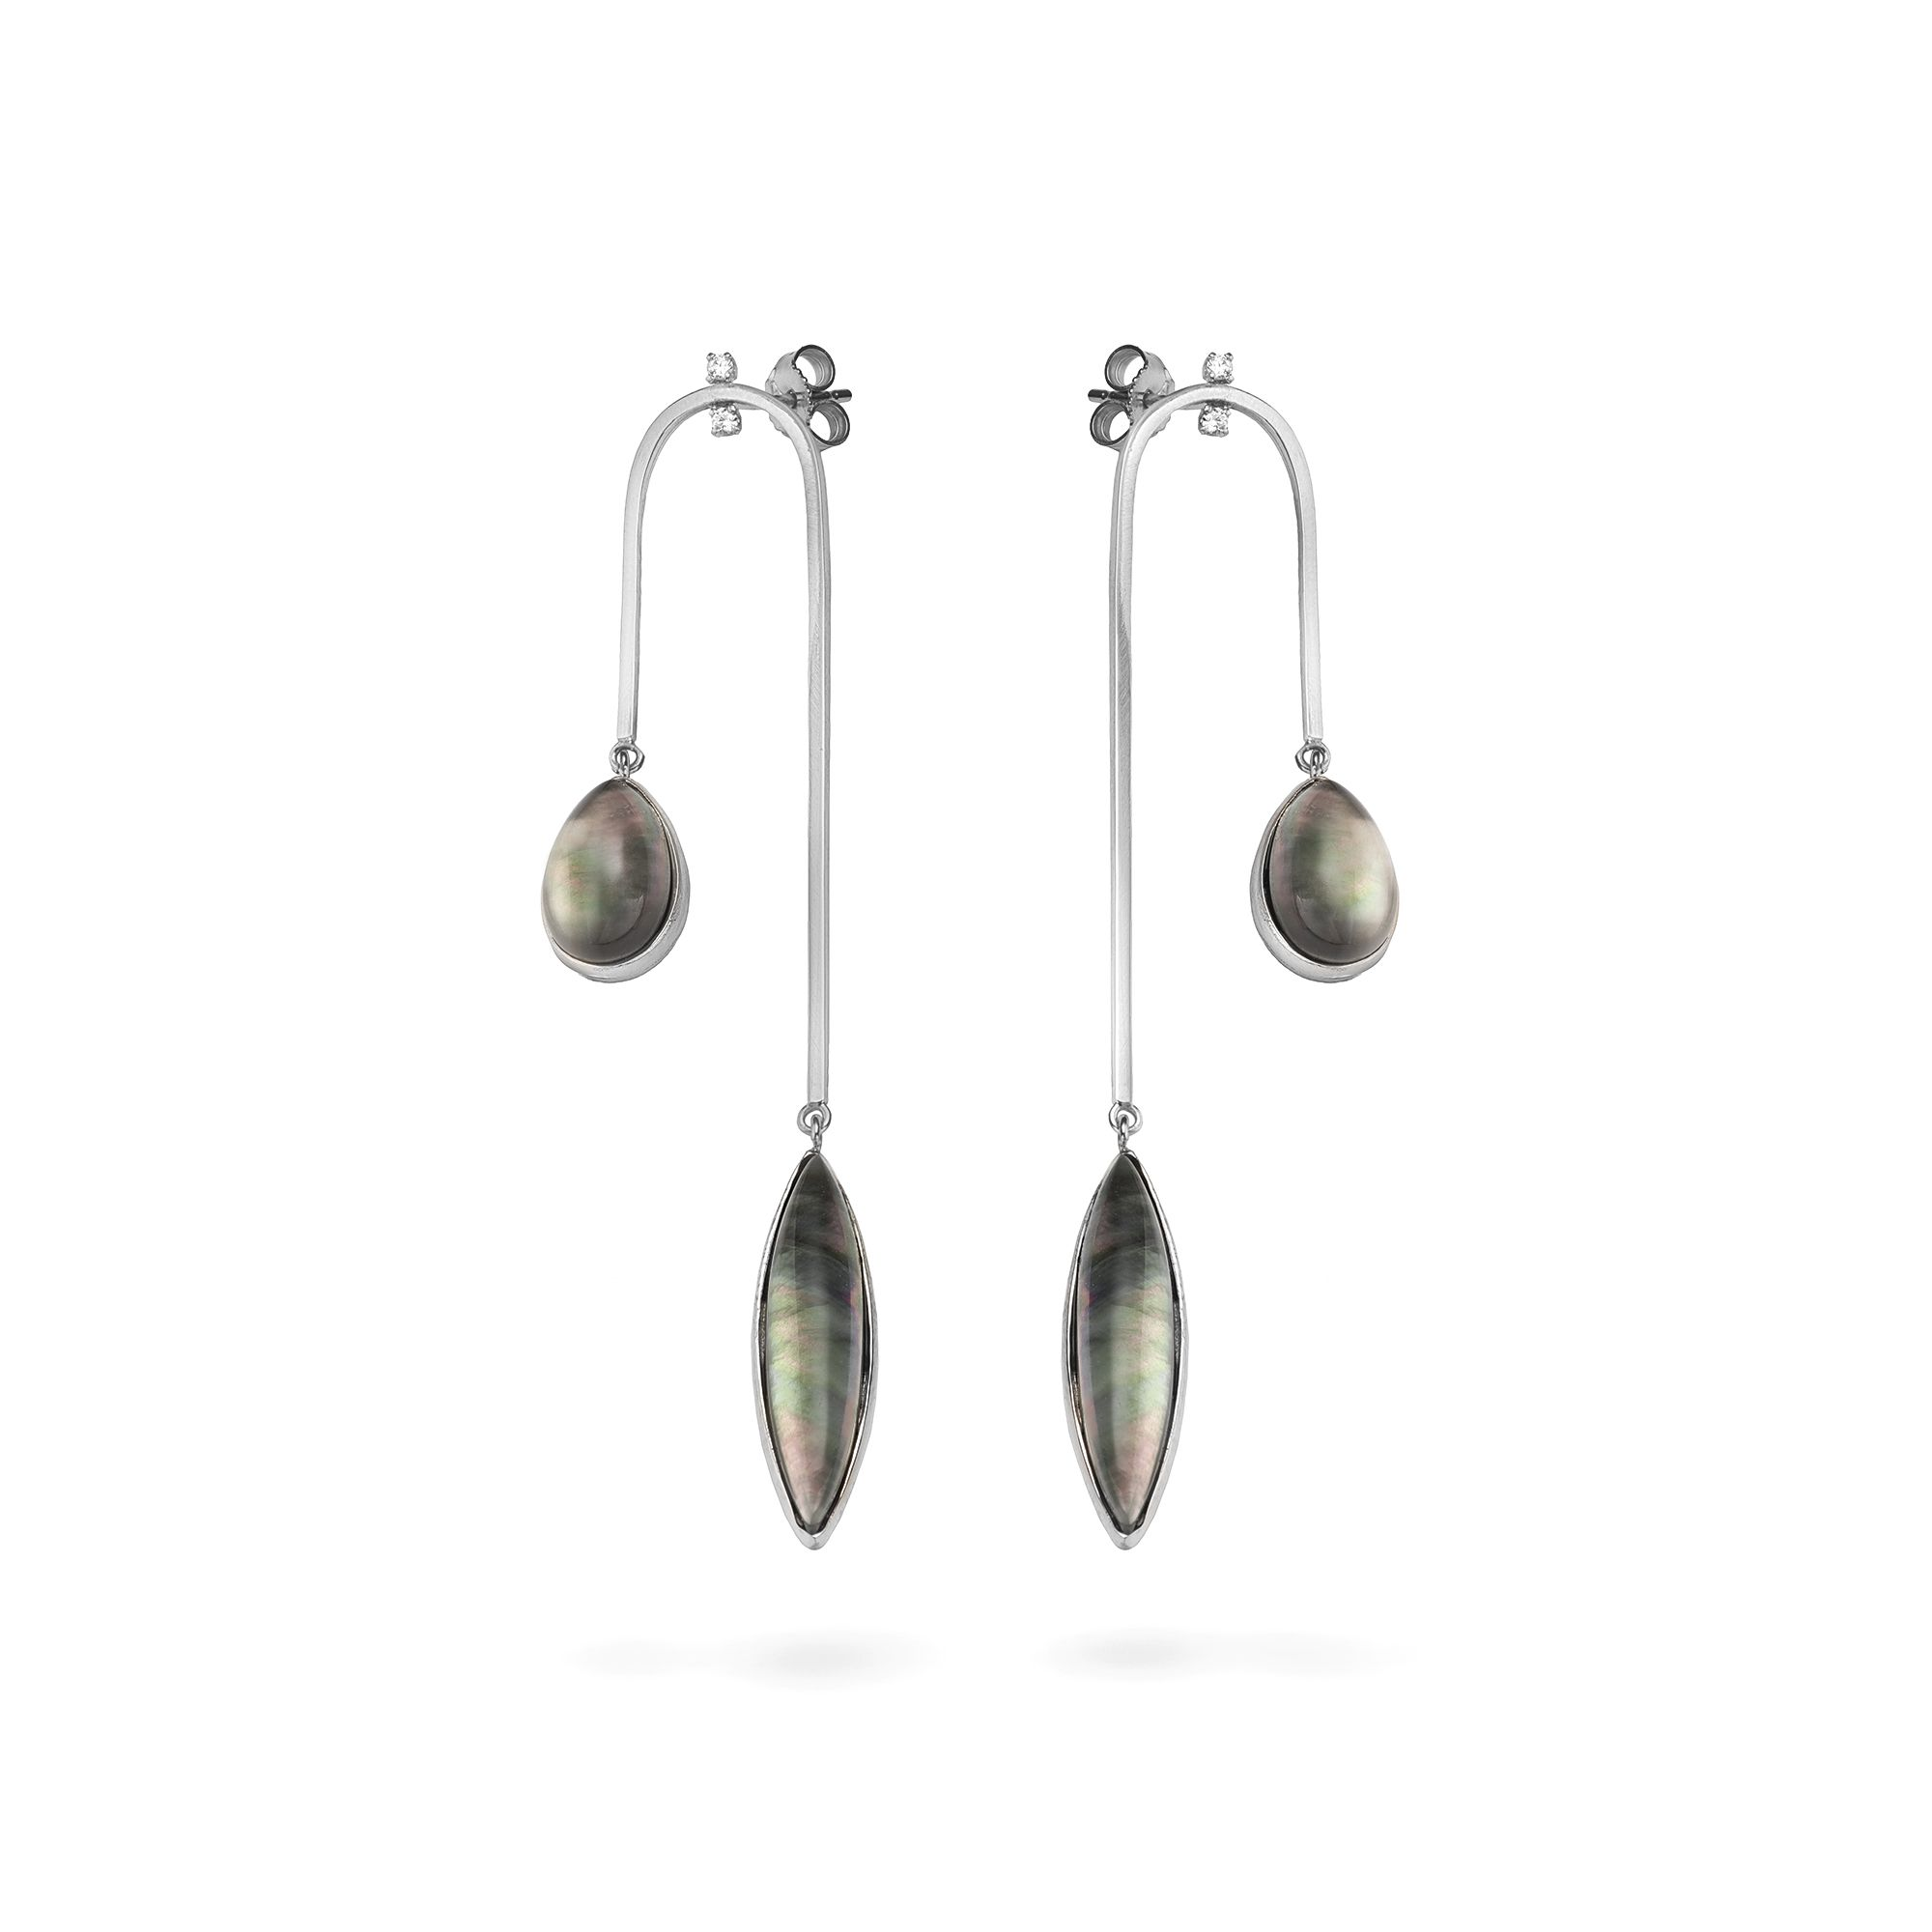 Curved 'Amo' earrings with m.o.p. White gold earrings with diamonds and stones